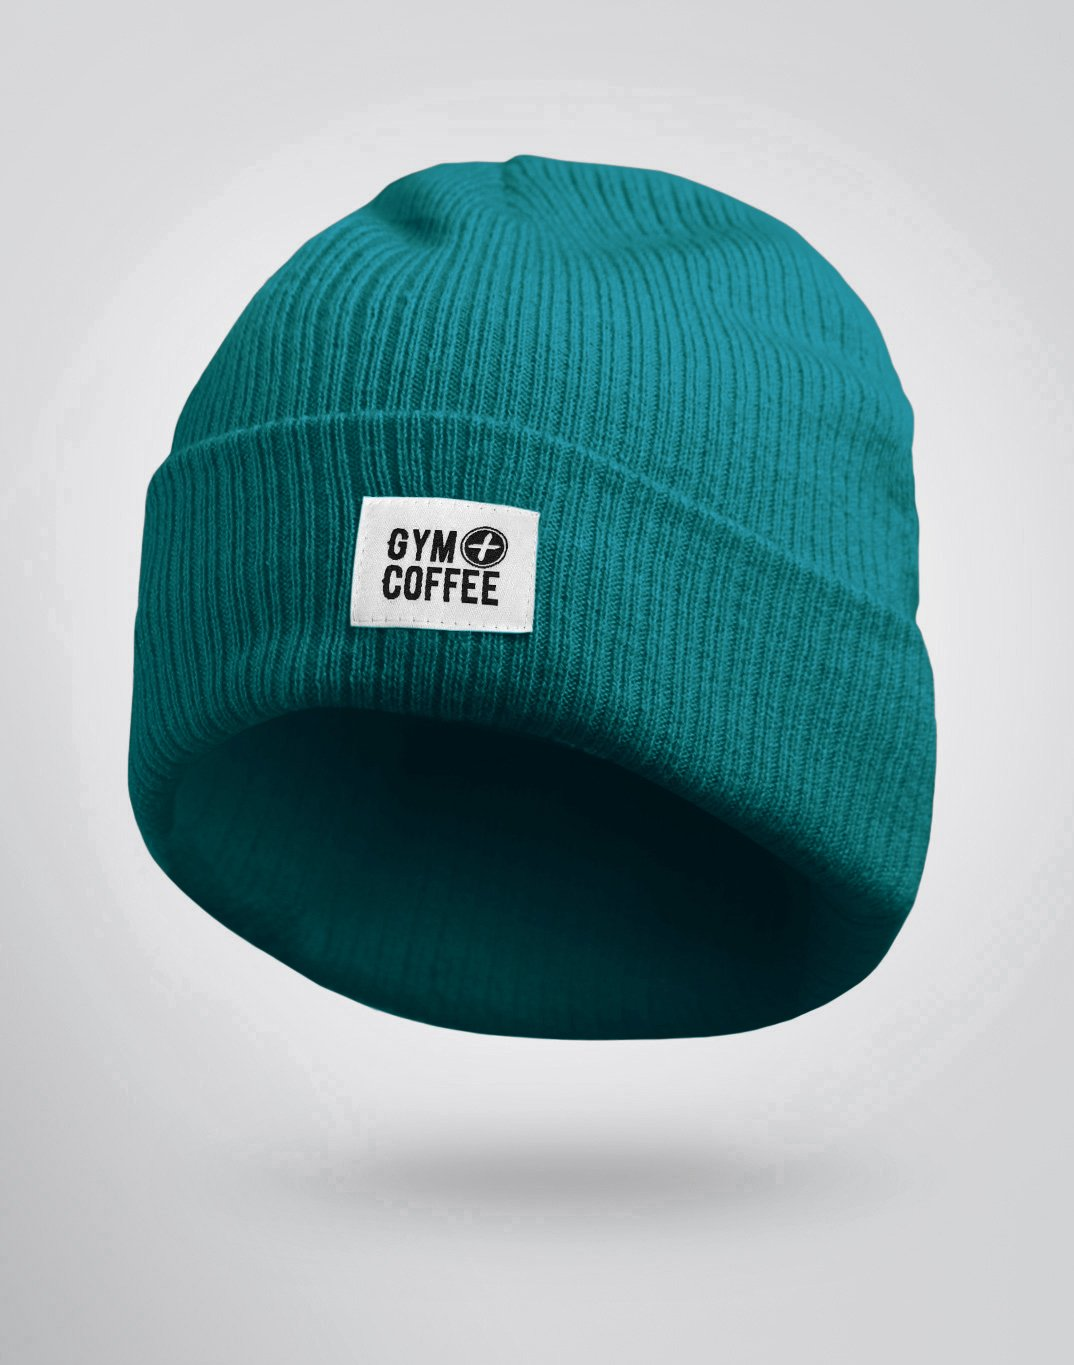 Gym Plus Coffee Beanie Deep Teal Beanie Designed in Ireland